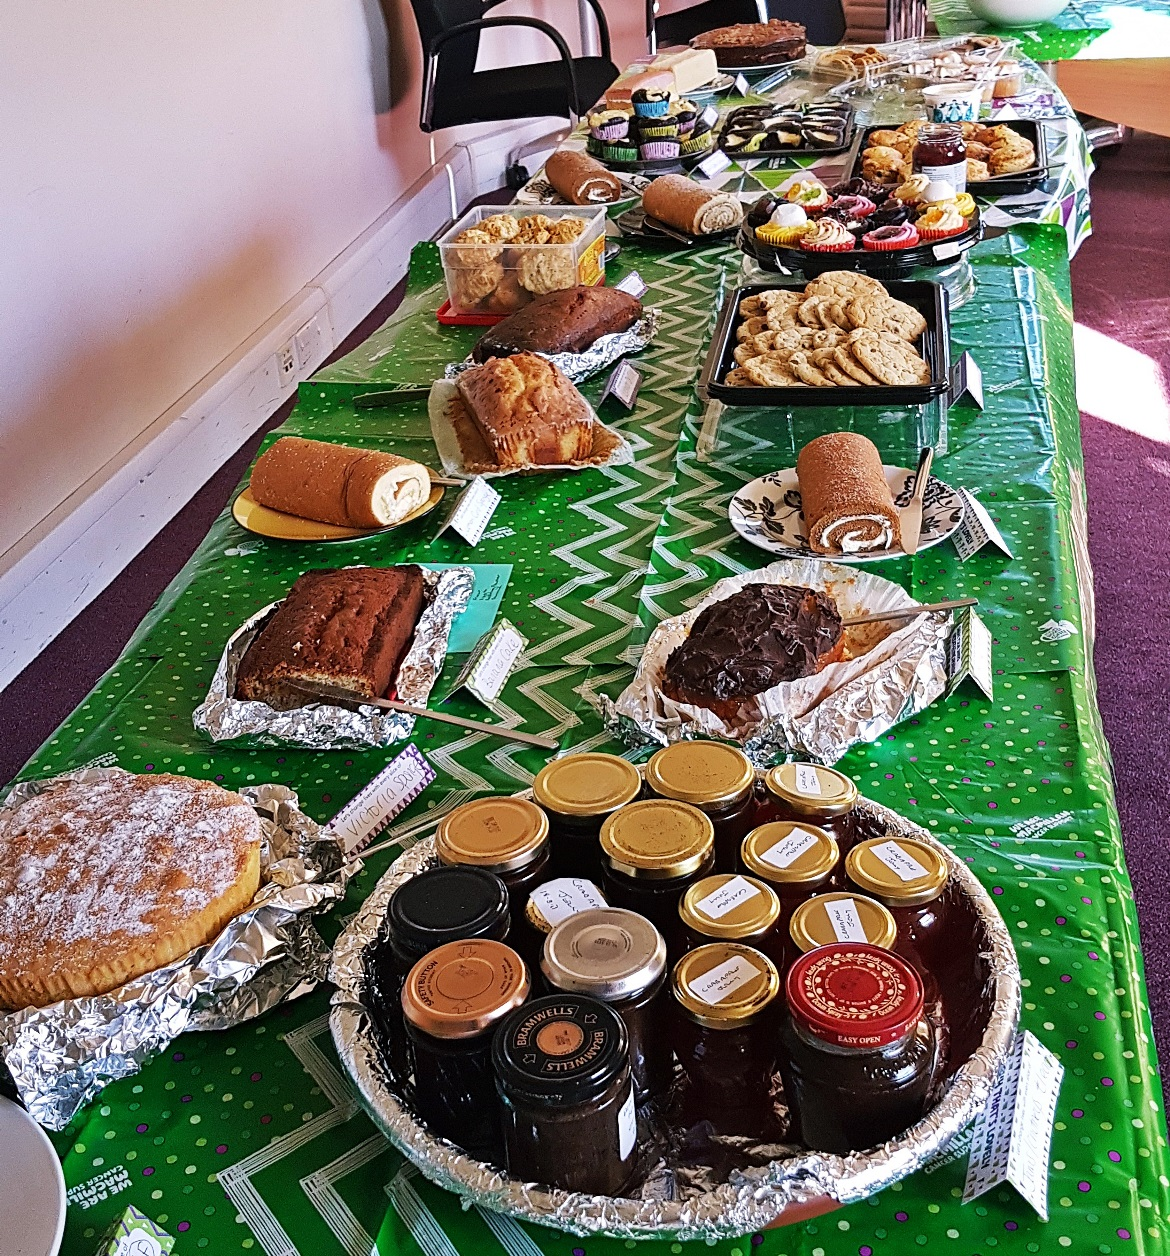 Macmillan Coffee Morning at work - October Monthly Recap by BeckyBecky Blogs